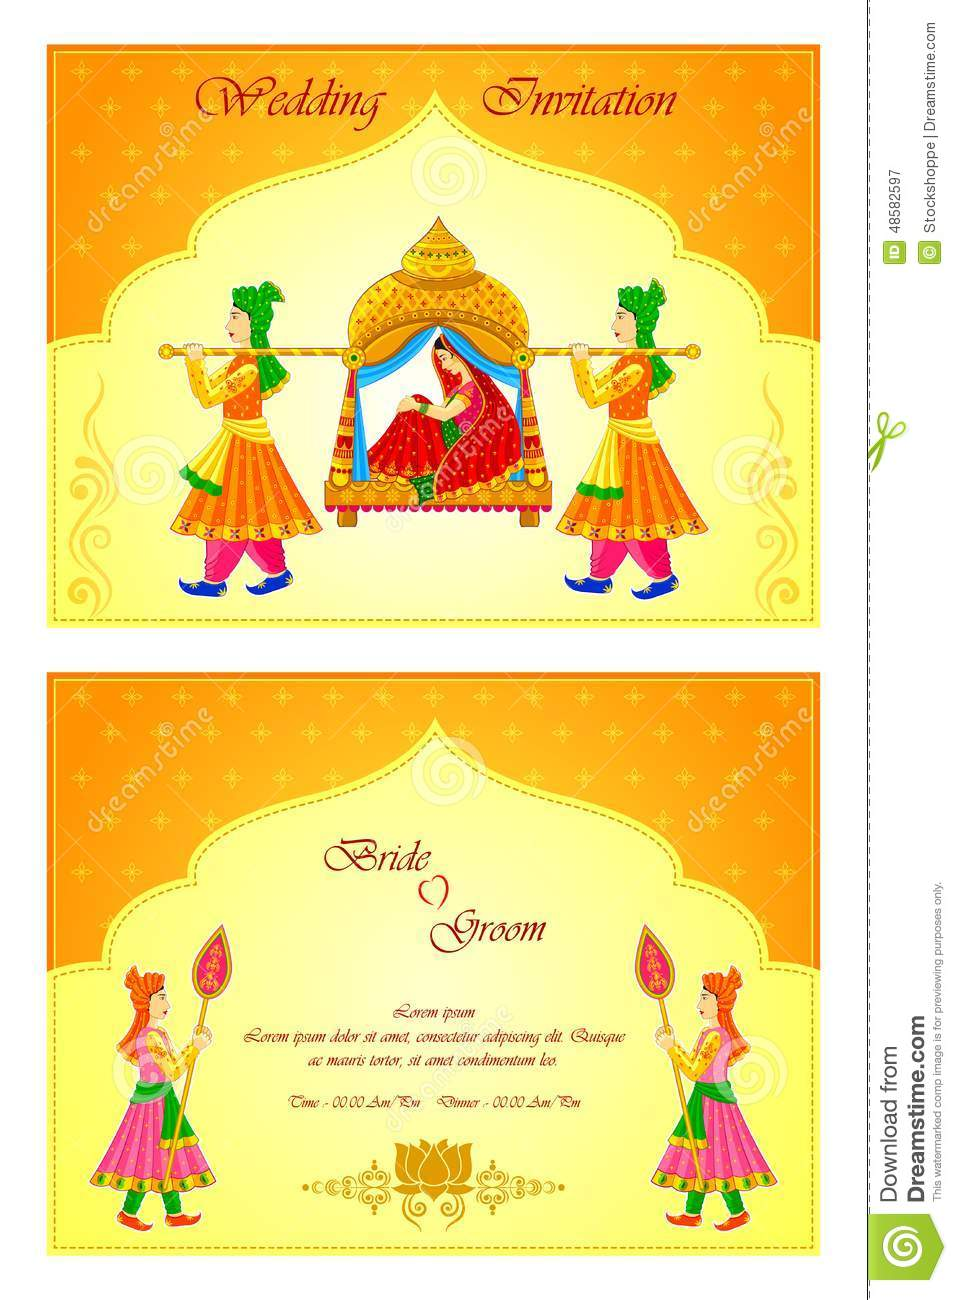 Free cover letter template best hindu invitation vector best of best hindu invitation vector best of indian wedding cliparts clipart collection kalas pinterest download free professionally templates in ms word stopboris Gallery